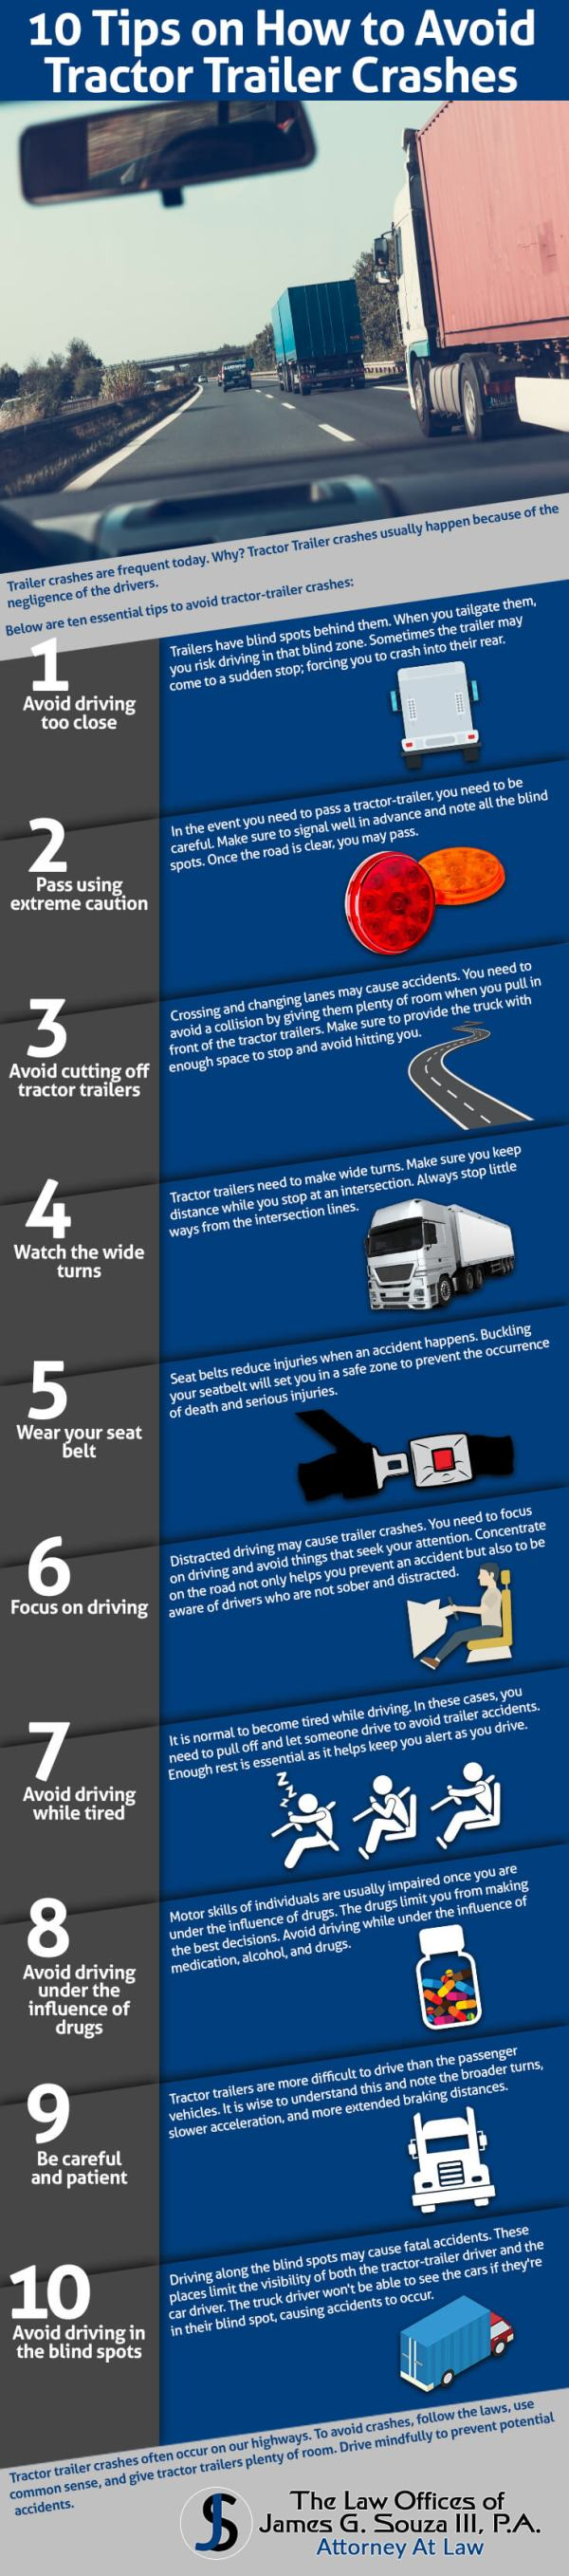 10-Tips-How-To-avoid-Tractor-Trailer-Crashes-infographic